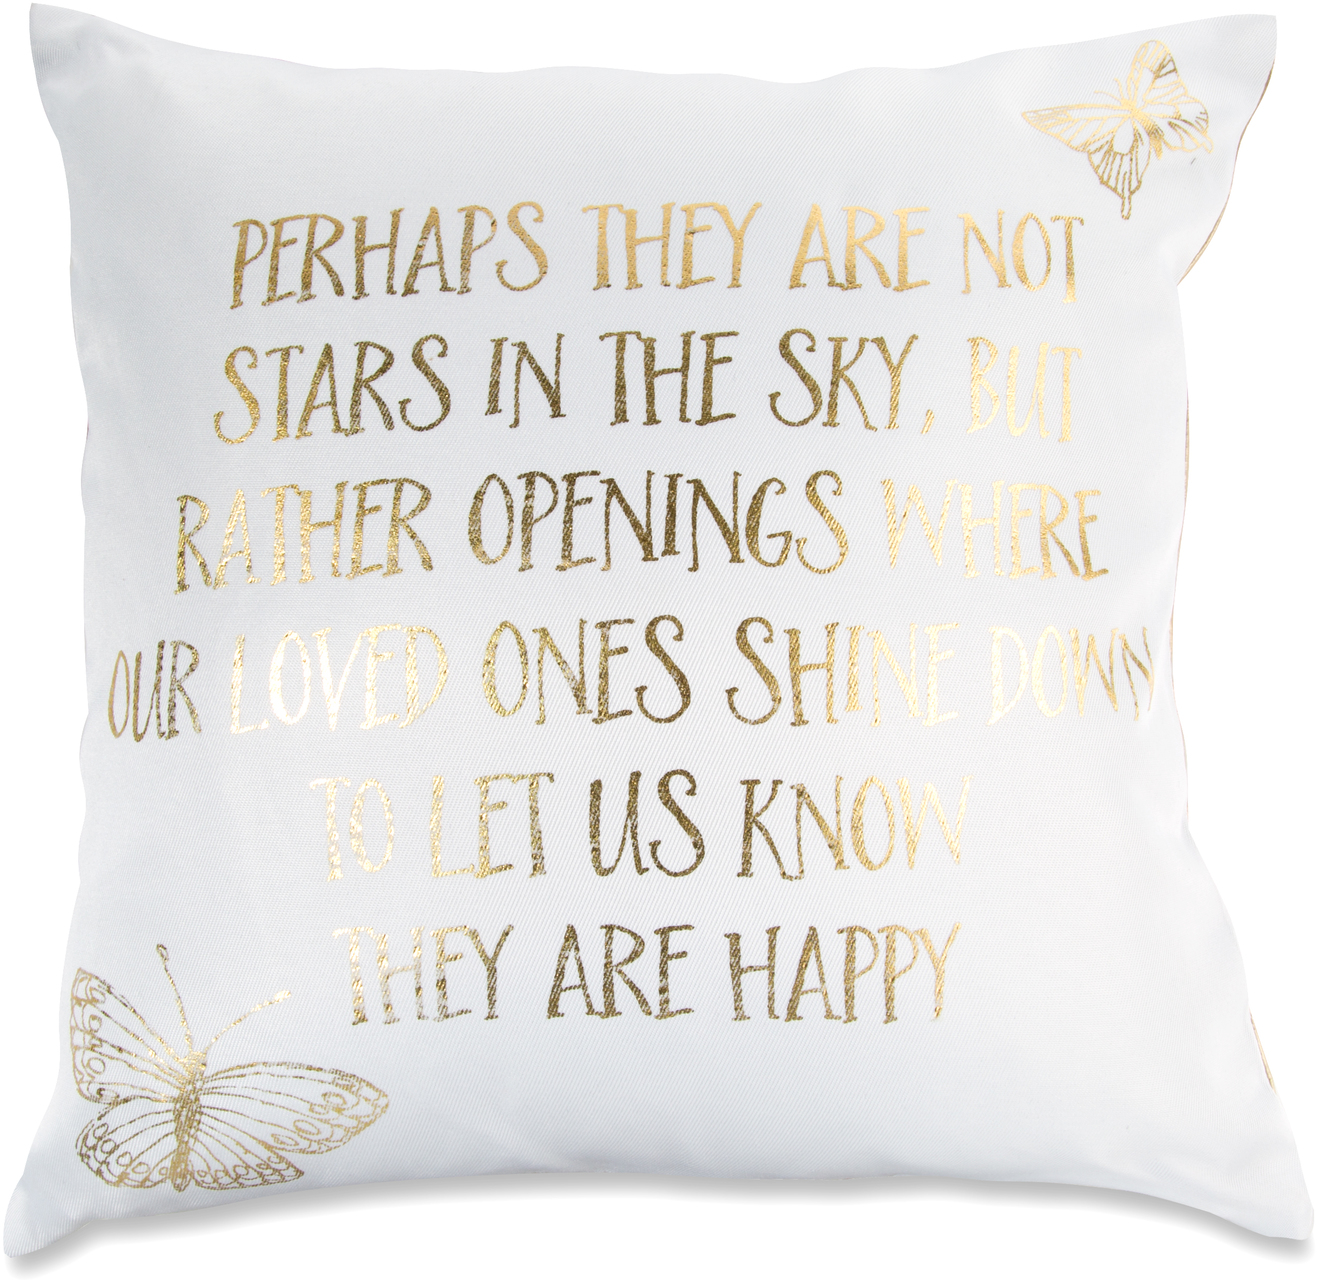 "Stars in the Sky by Butterfly Whispers - Stars in the Sky - 12"" Pillow"